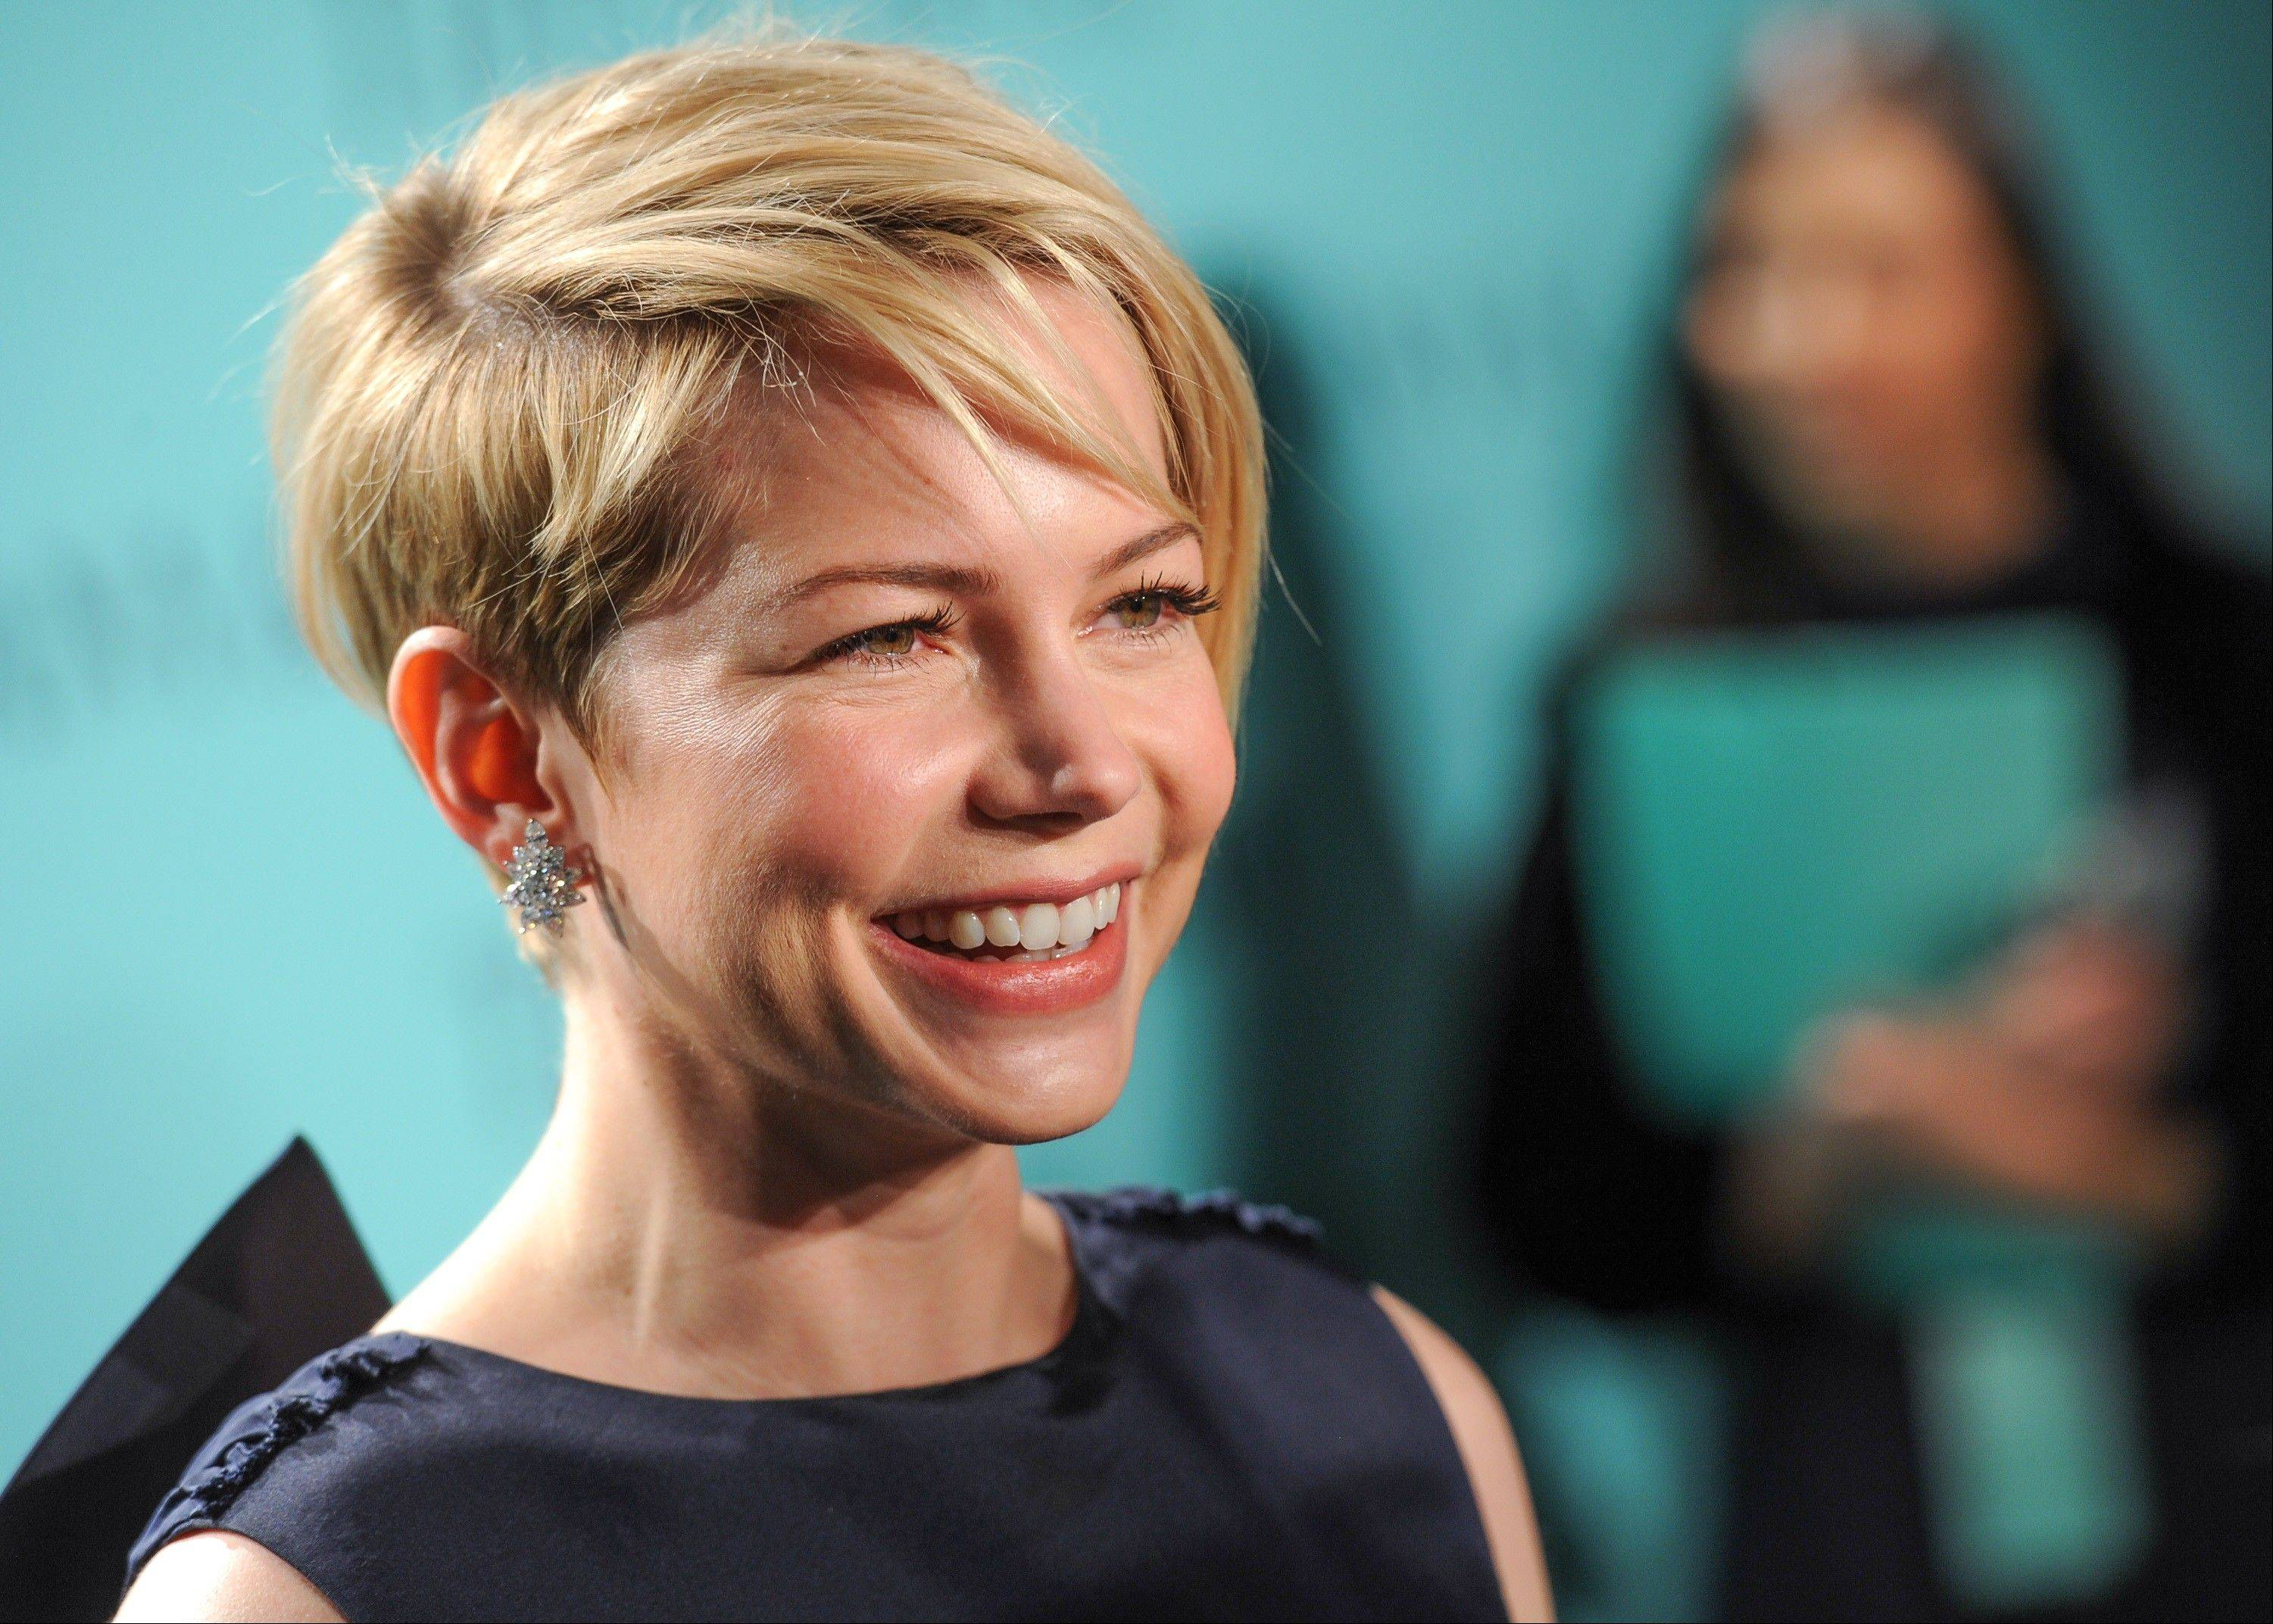 This April 18, 2013 file photo shows actress Michelle Williams sporting a pixie haircut at the Tiffany & Co. Blue Book Ball in New York.